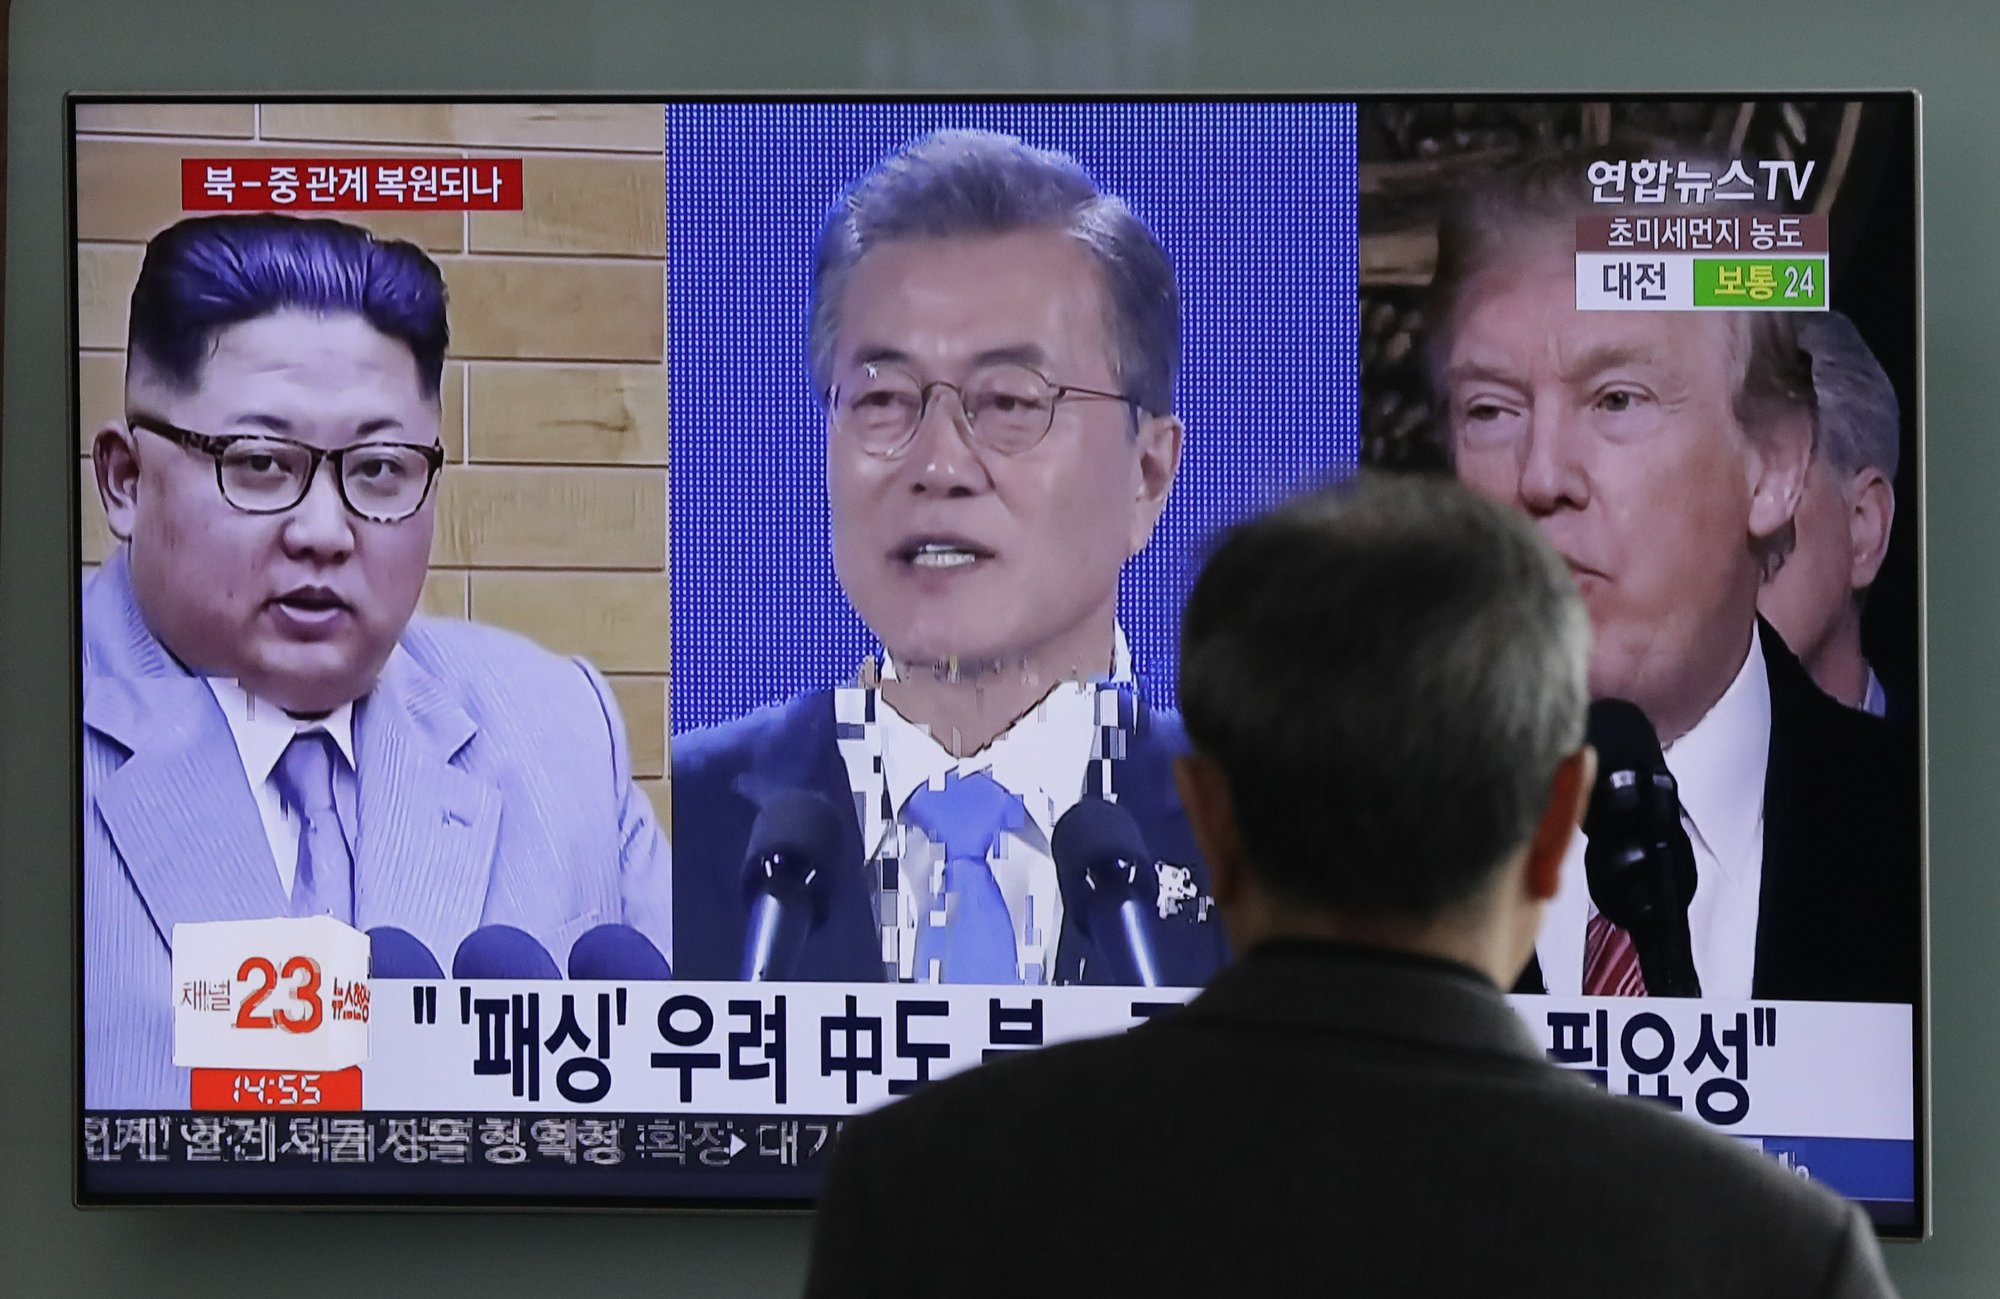 Trump says he has responsibility to resolve Korean conflict